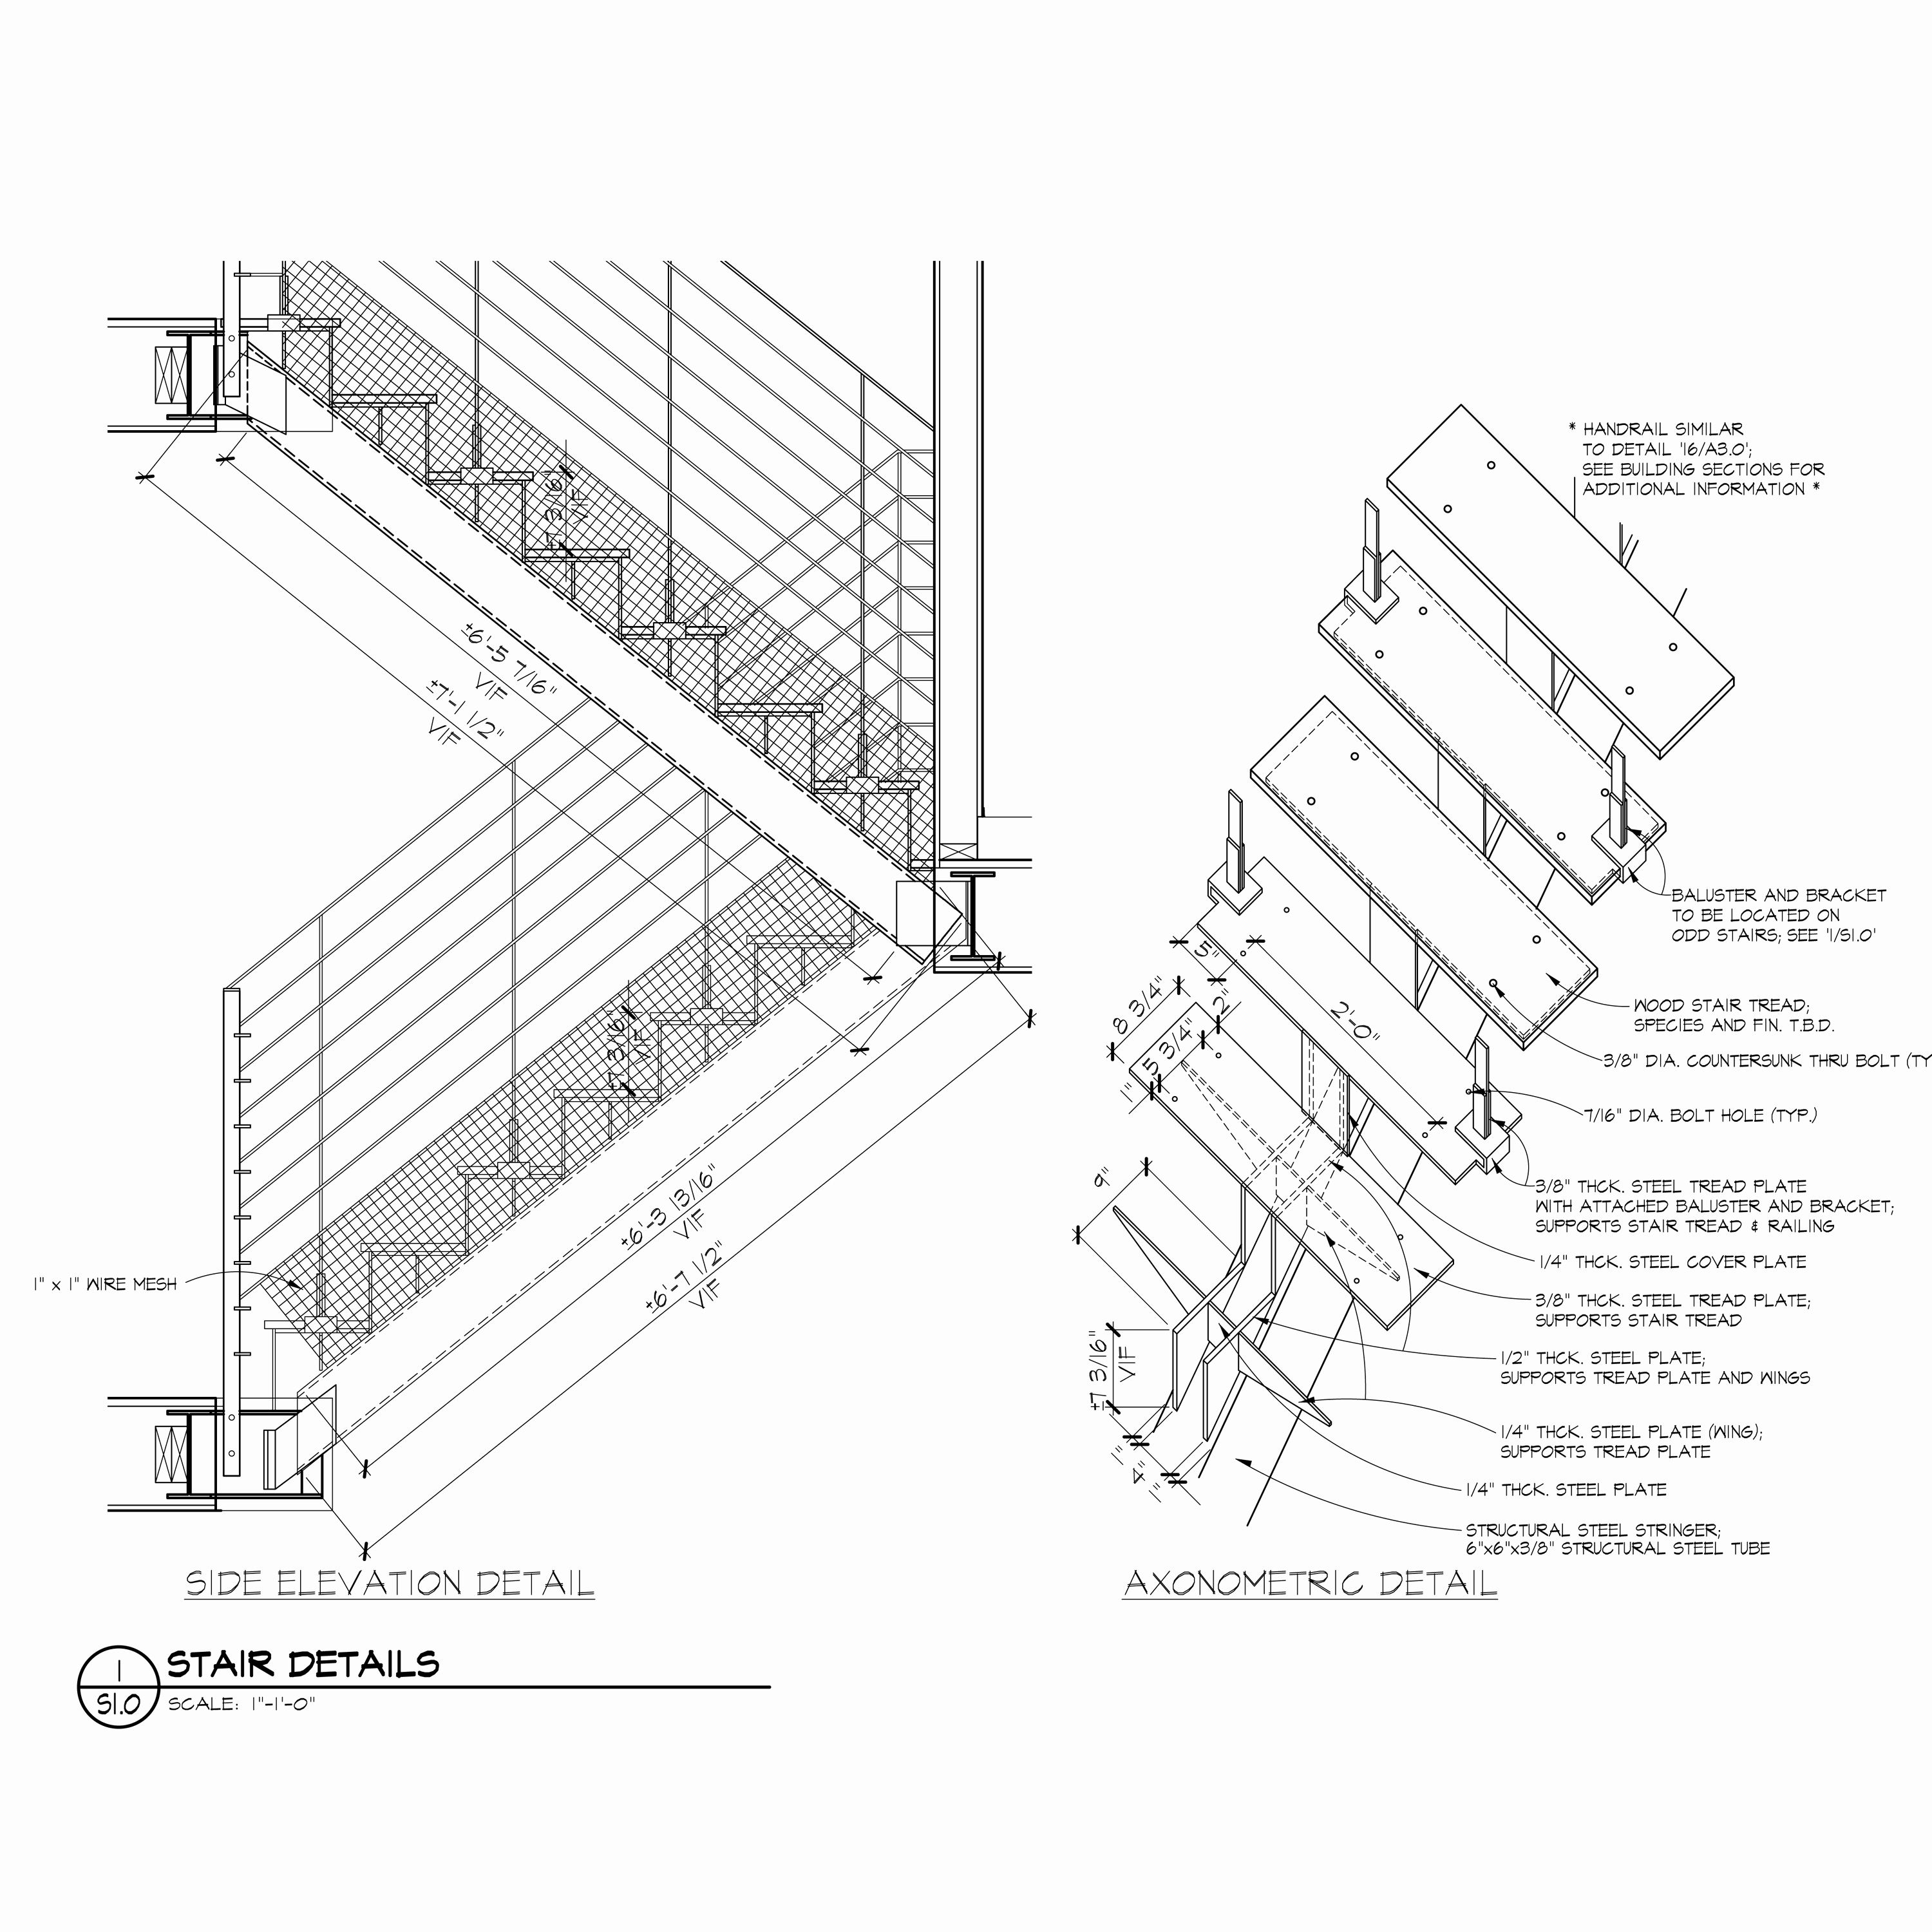 Stairs Section Drawing at GetDrawings.com | Free for ...